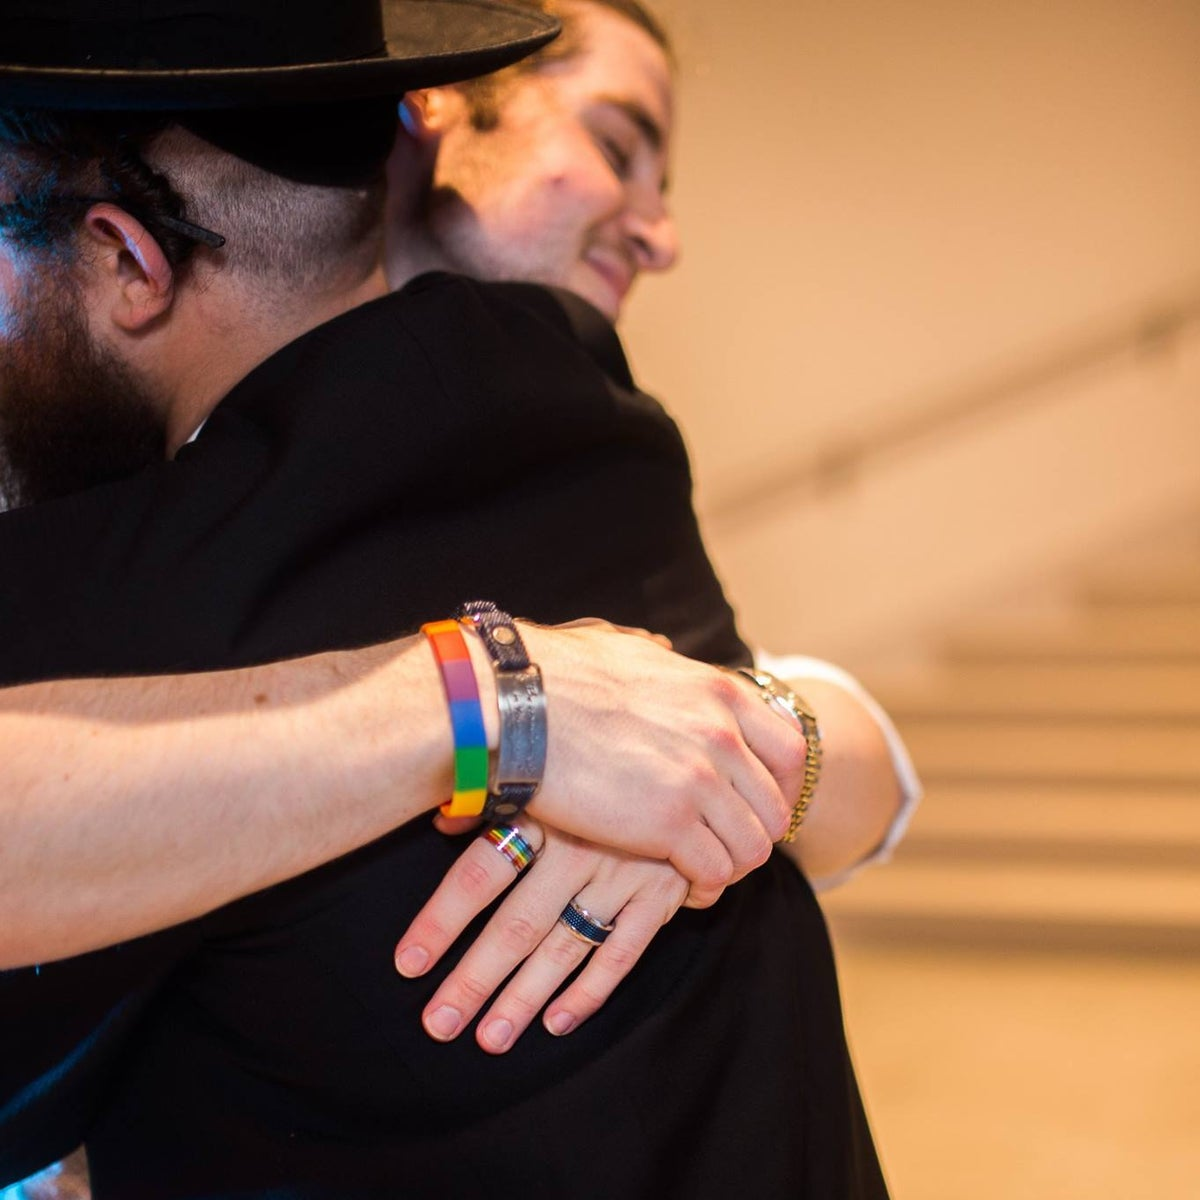 Gedalia Penner, right, hugging an ultra-Orthodox man at a Jewish Queer Youth event in New York.